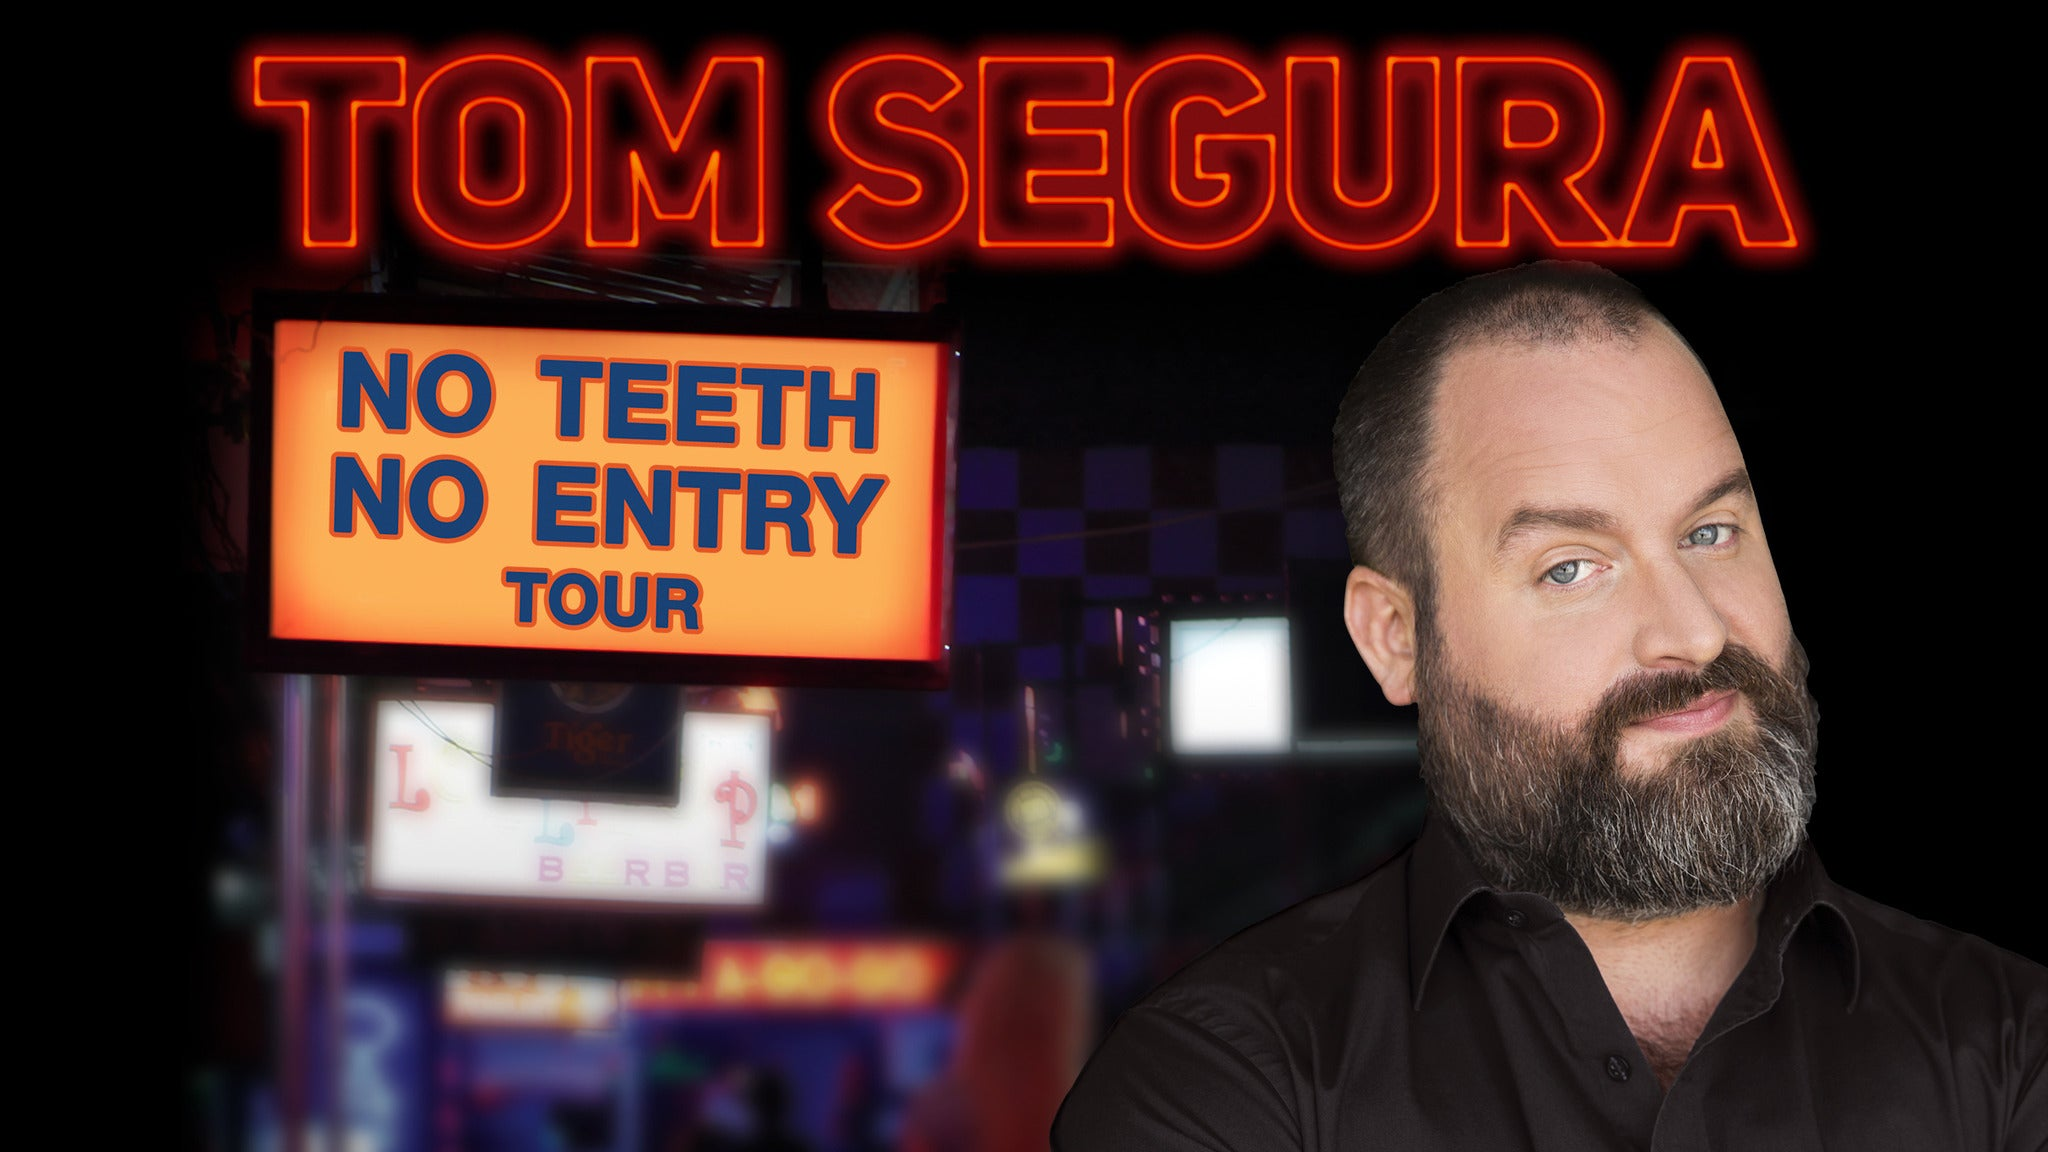 Tom Segura: No Teeth No Entry Tour at The Wiltern - Los Angeles, CA 90010